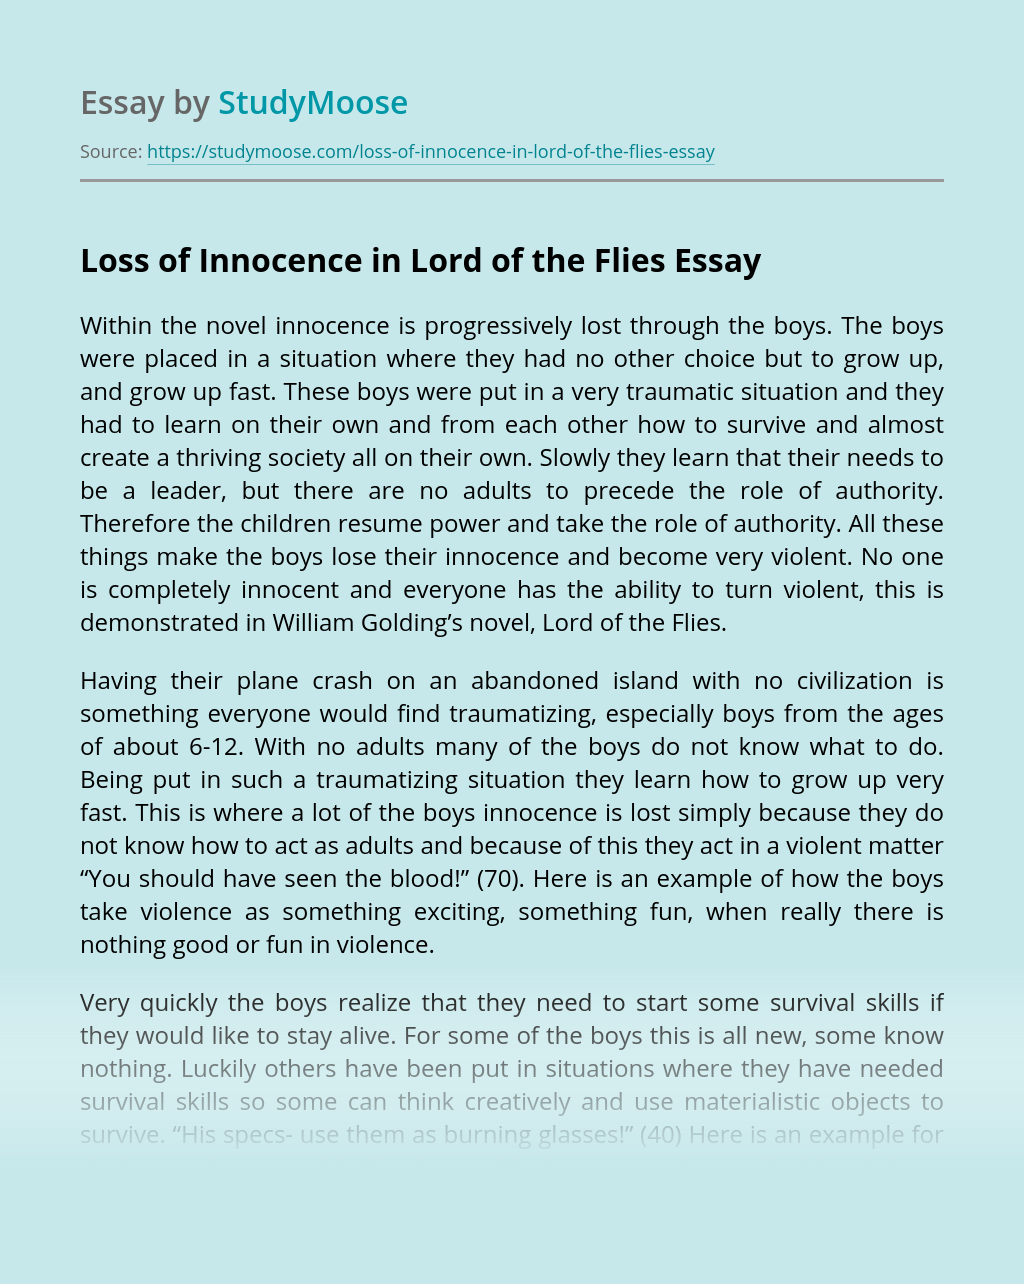 Loss of Innocence in Lord of the Flies